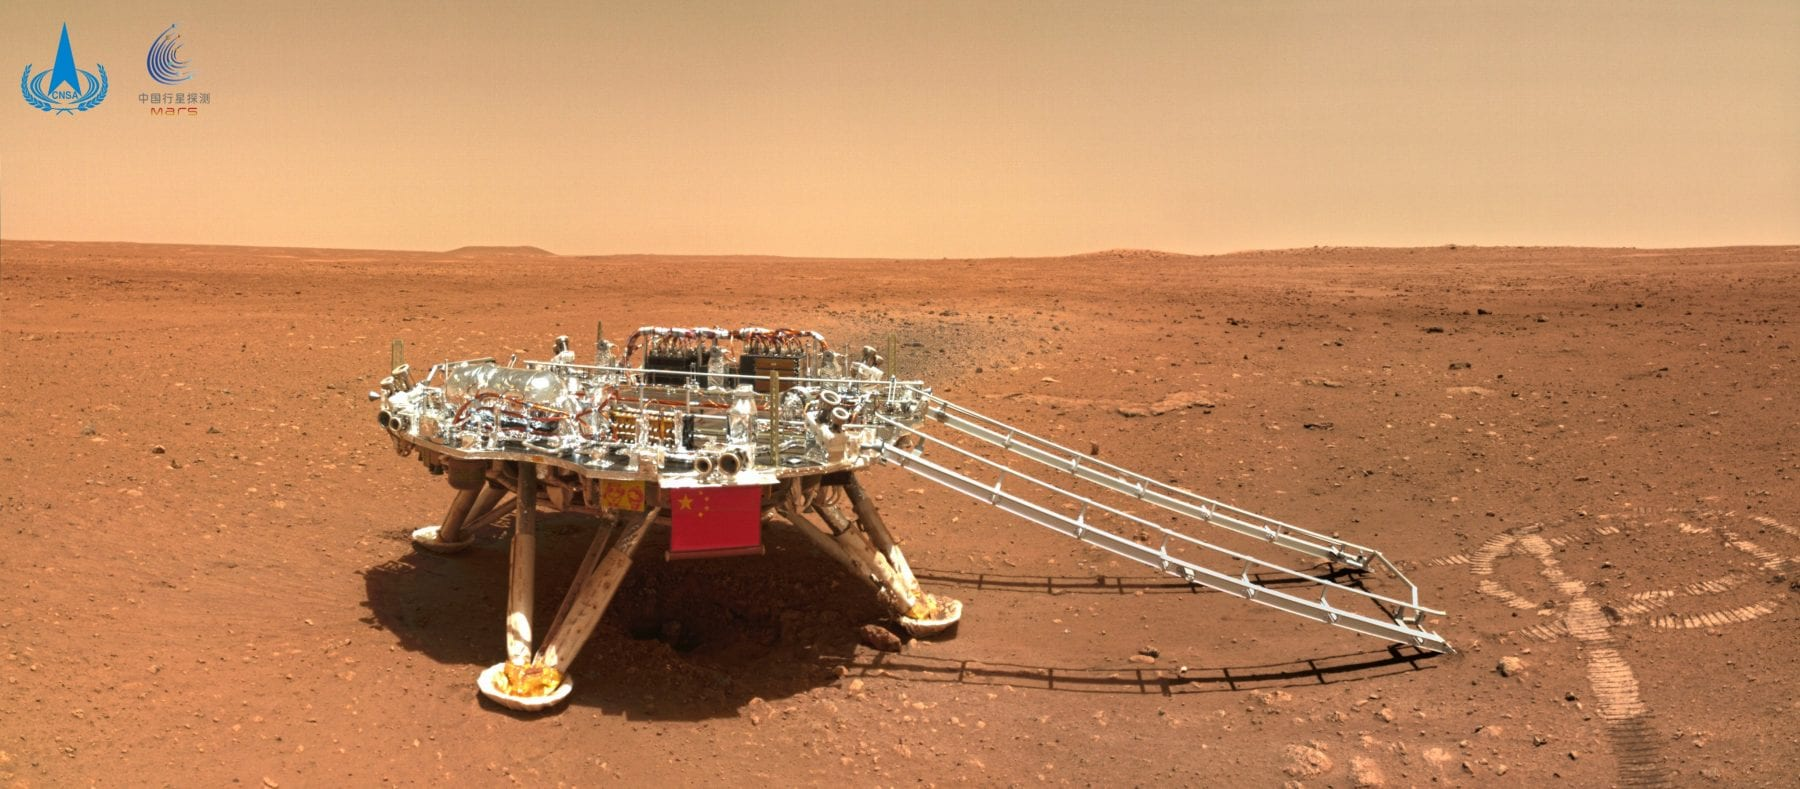 Image from the Zhurong rover showing the landing platform on which it landed on Mars. It left the plaftorm on May 21. Credit: CNSA